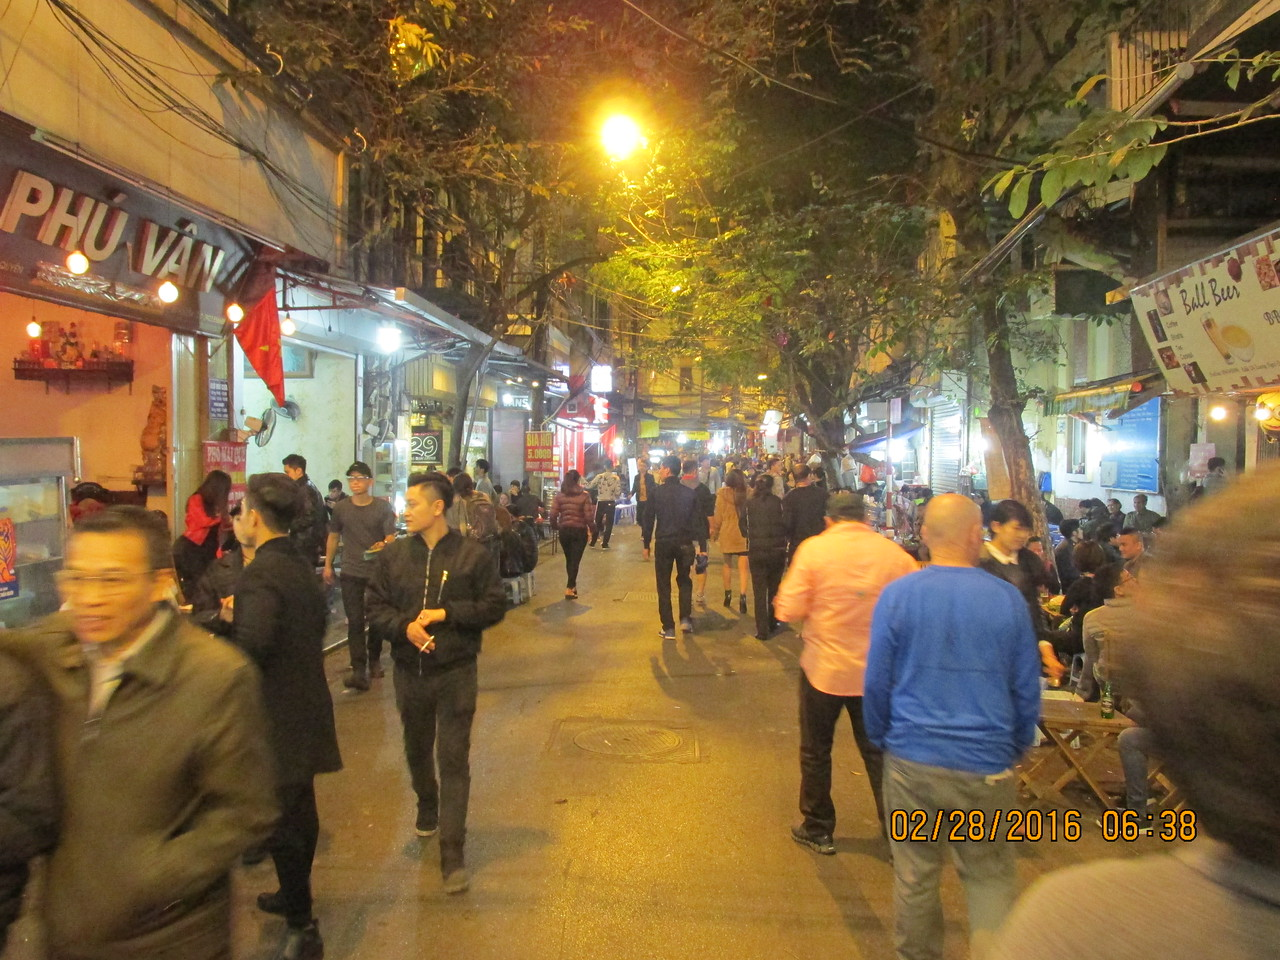 0072 - Streets of the Old Quarter - Hanoi Vietnam - Date Correct but Time on Pic is Wrong